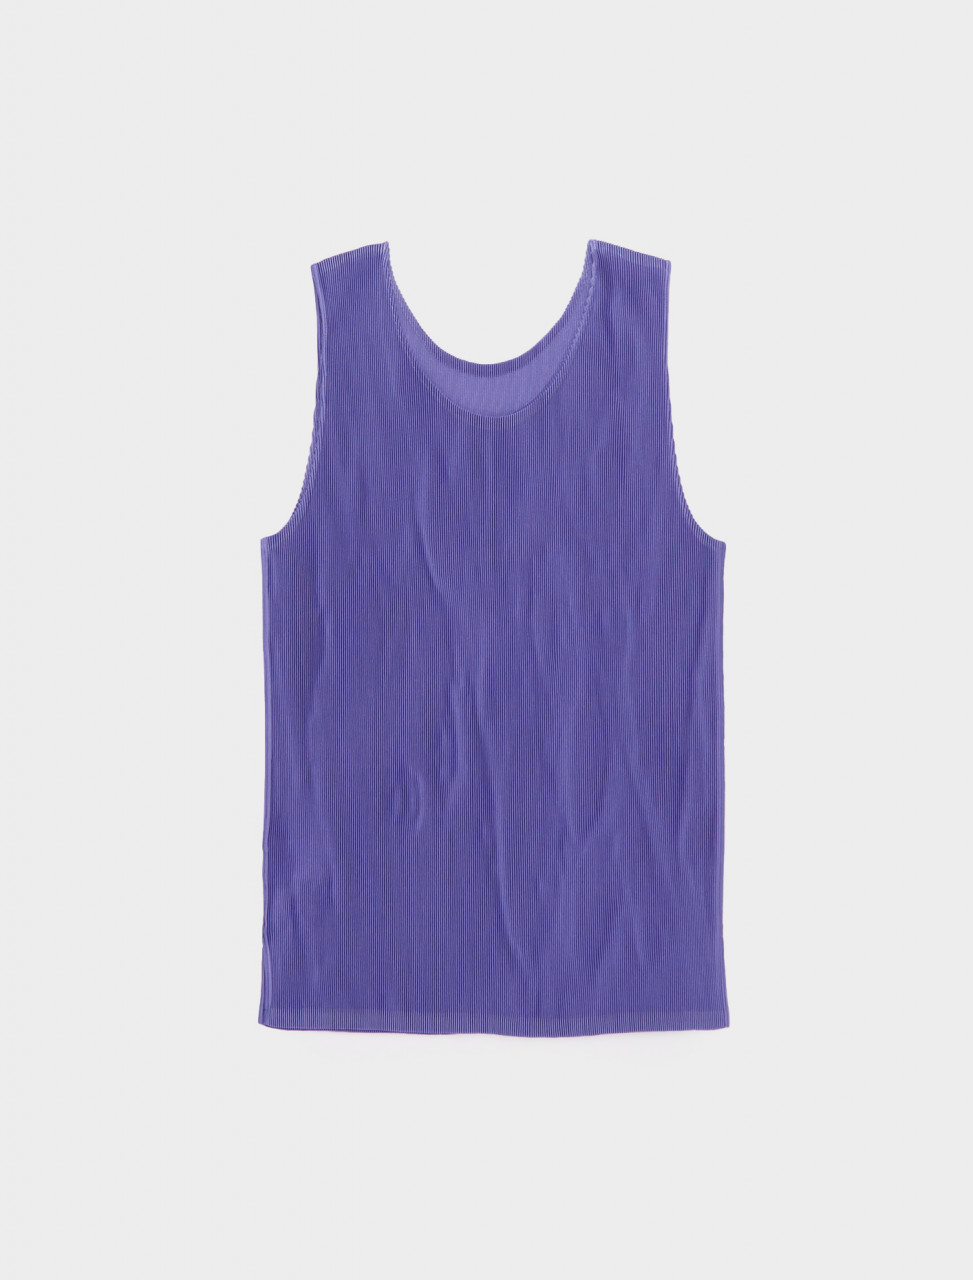 286-PP08FK292-80 ISSEY MIYAKE PLEATS PLEASE SLEEVELESS TOP LIGHT PURPLE